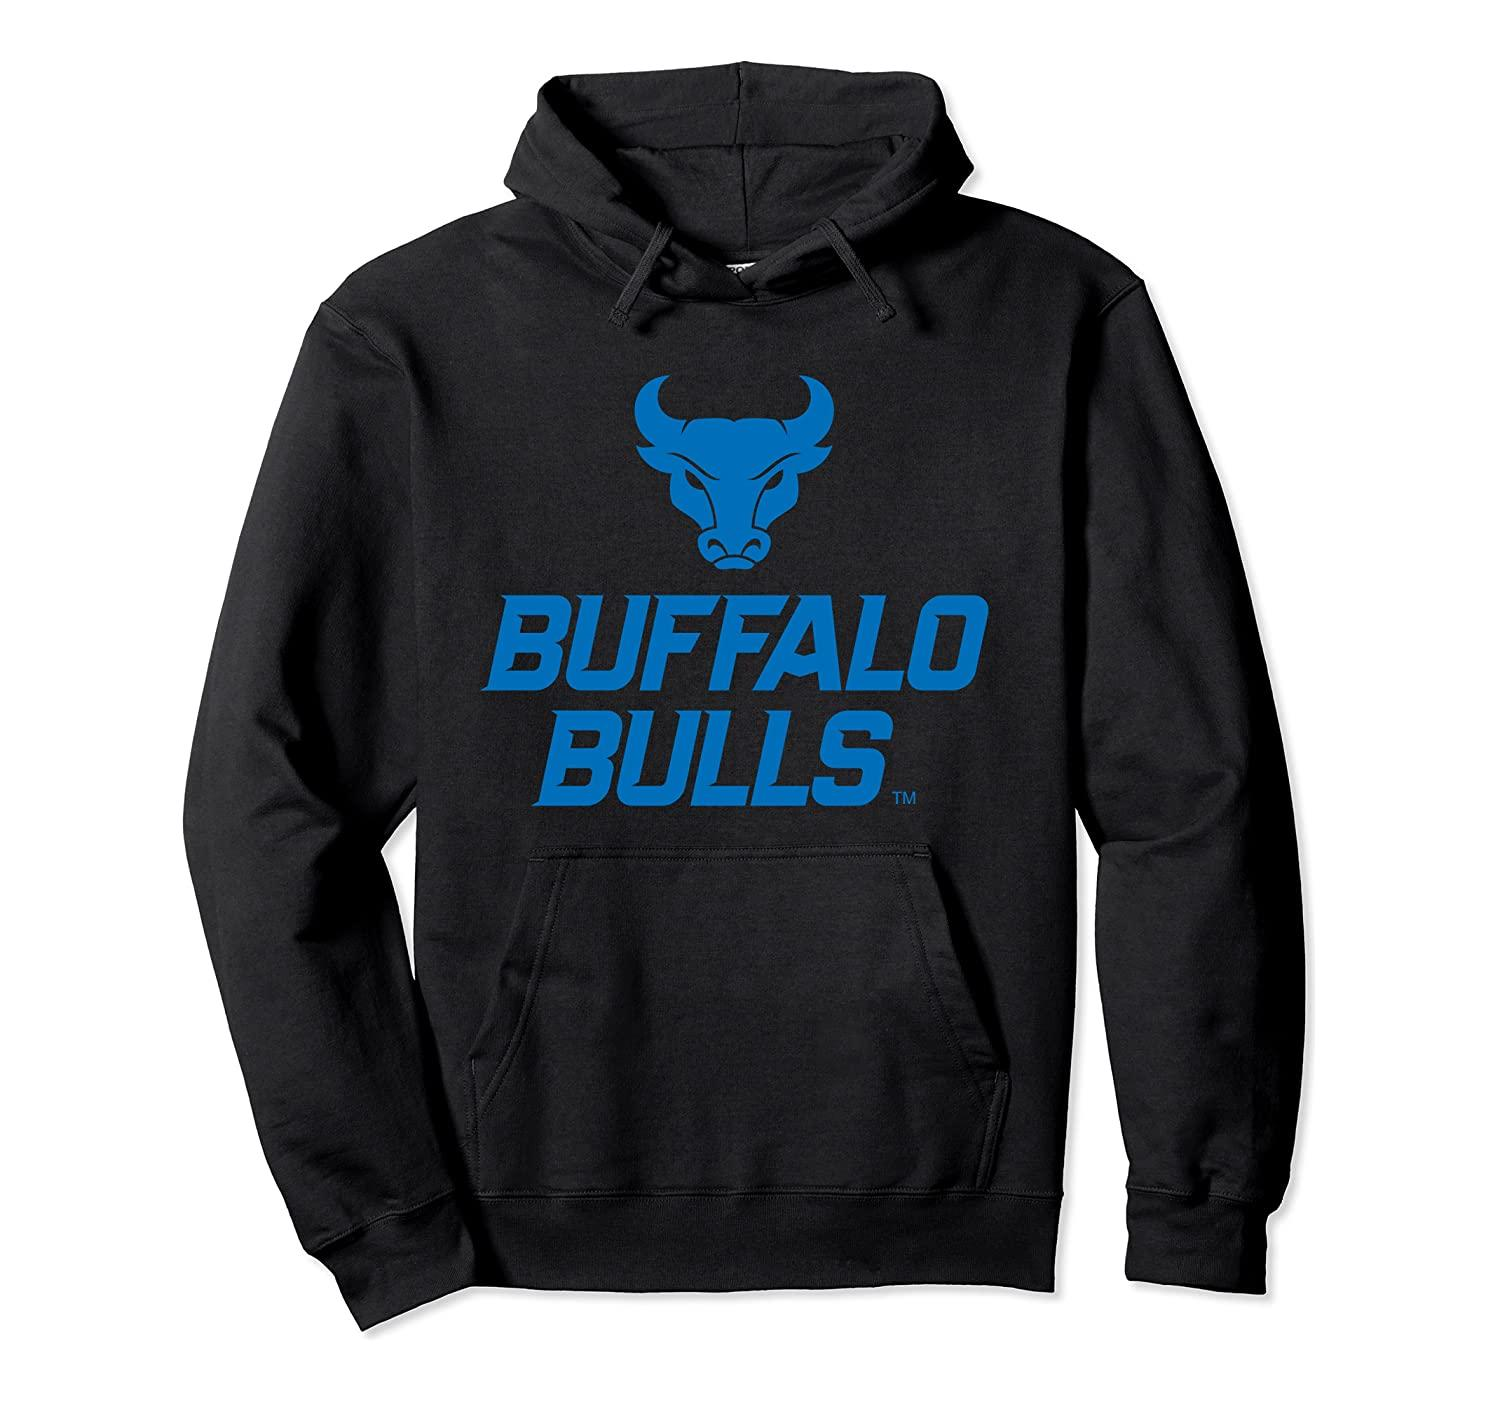 Università di Buffalo Bulls NCAA con cappuccio unisex S-5XL Nero / Grigio / Navy / Royal Blue / Scuro Heather PPBUF05